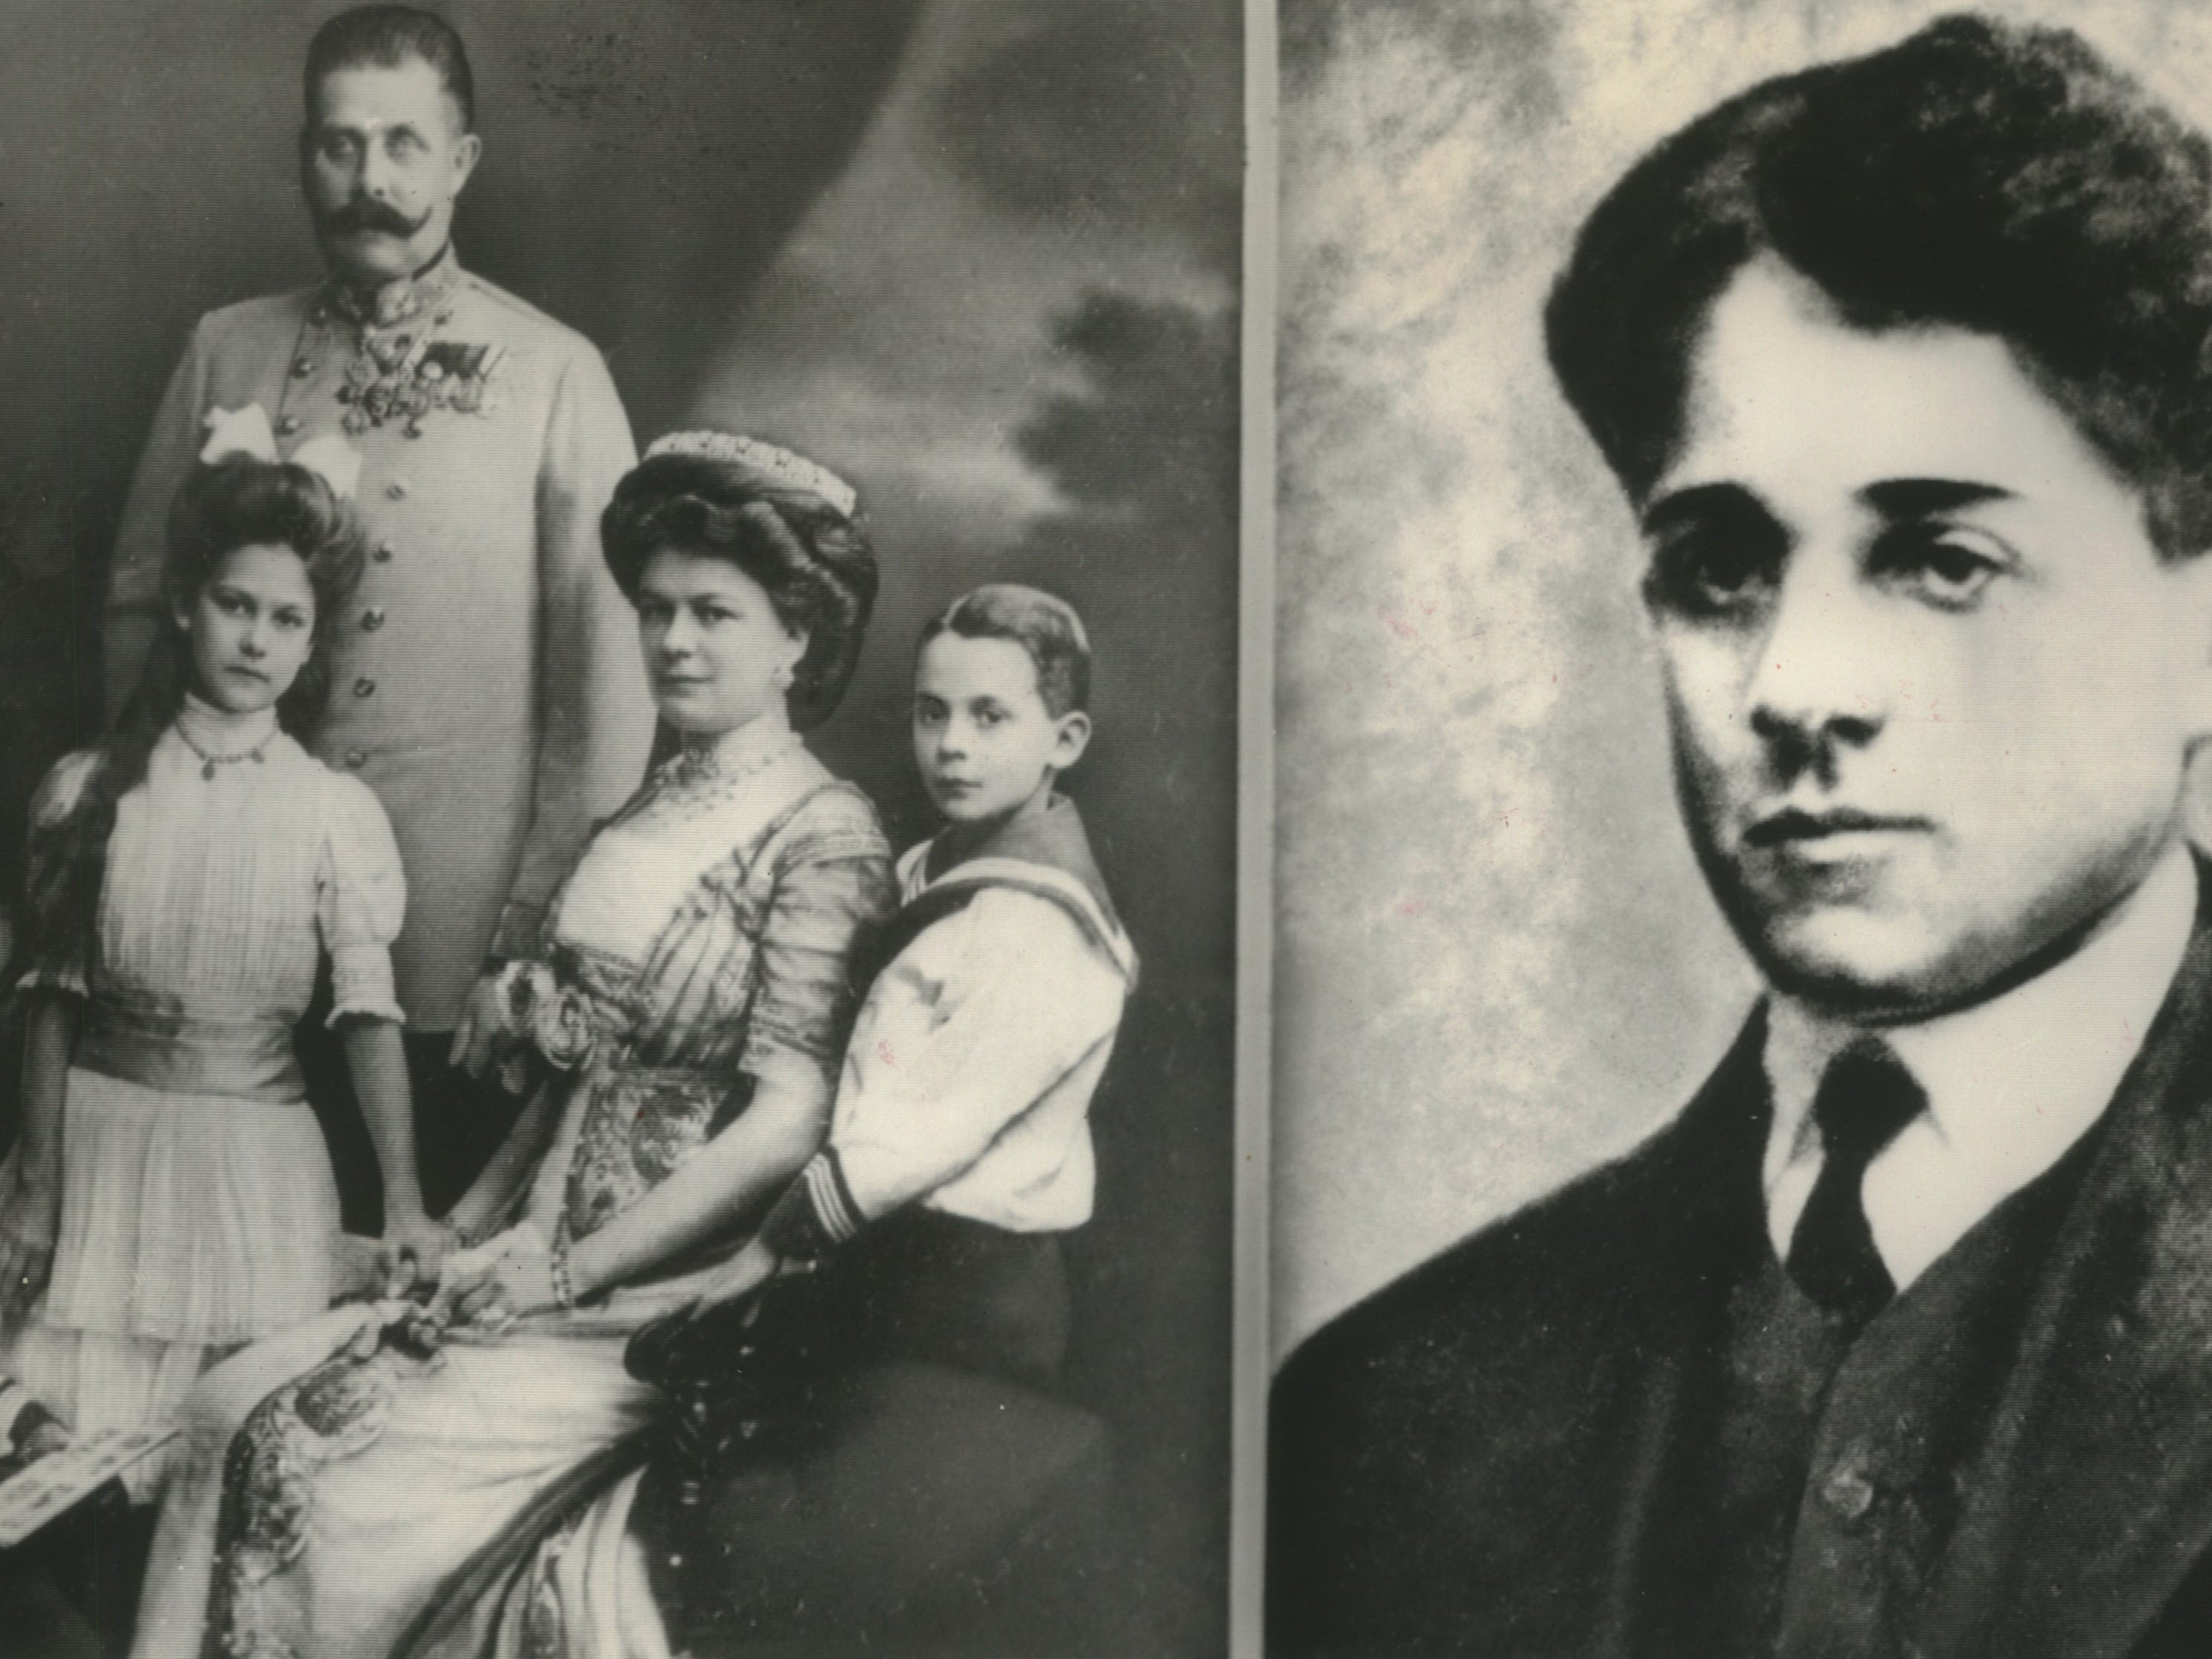 Gavrilo Princip, right, a Serbian youth, assassinated Austrian Archduke Franz Ferdinand and his wife (shown at left with their children, Ernst, Sophie, and Max). The assassination took place in Sarajevo, Yugoslavia, on June 28, 1914. The photo of Princip is from a painting said to have been done not long before the assassination.